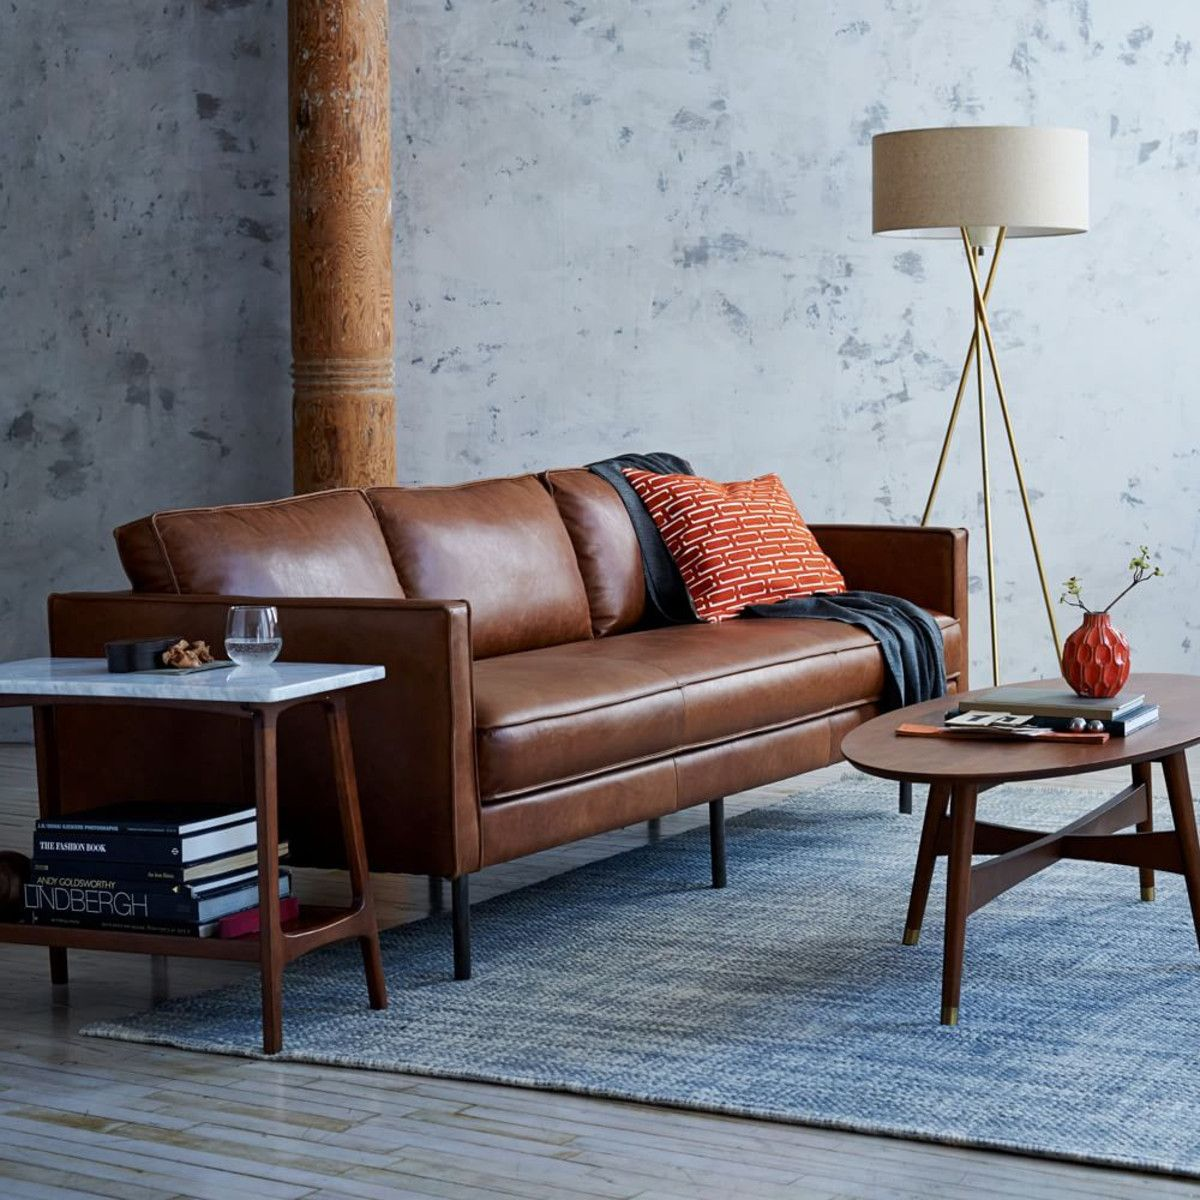 Axel Leather Sofa. Brown Leather Sofa, Future Purchase For Living Room.  From West Part 36